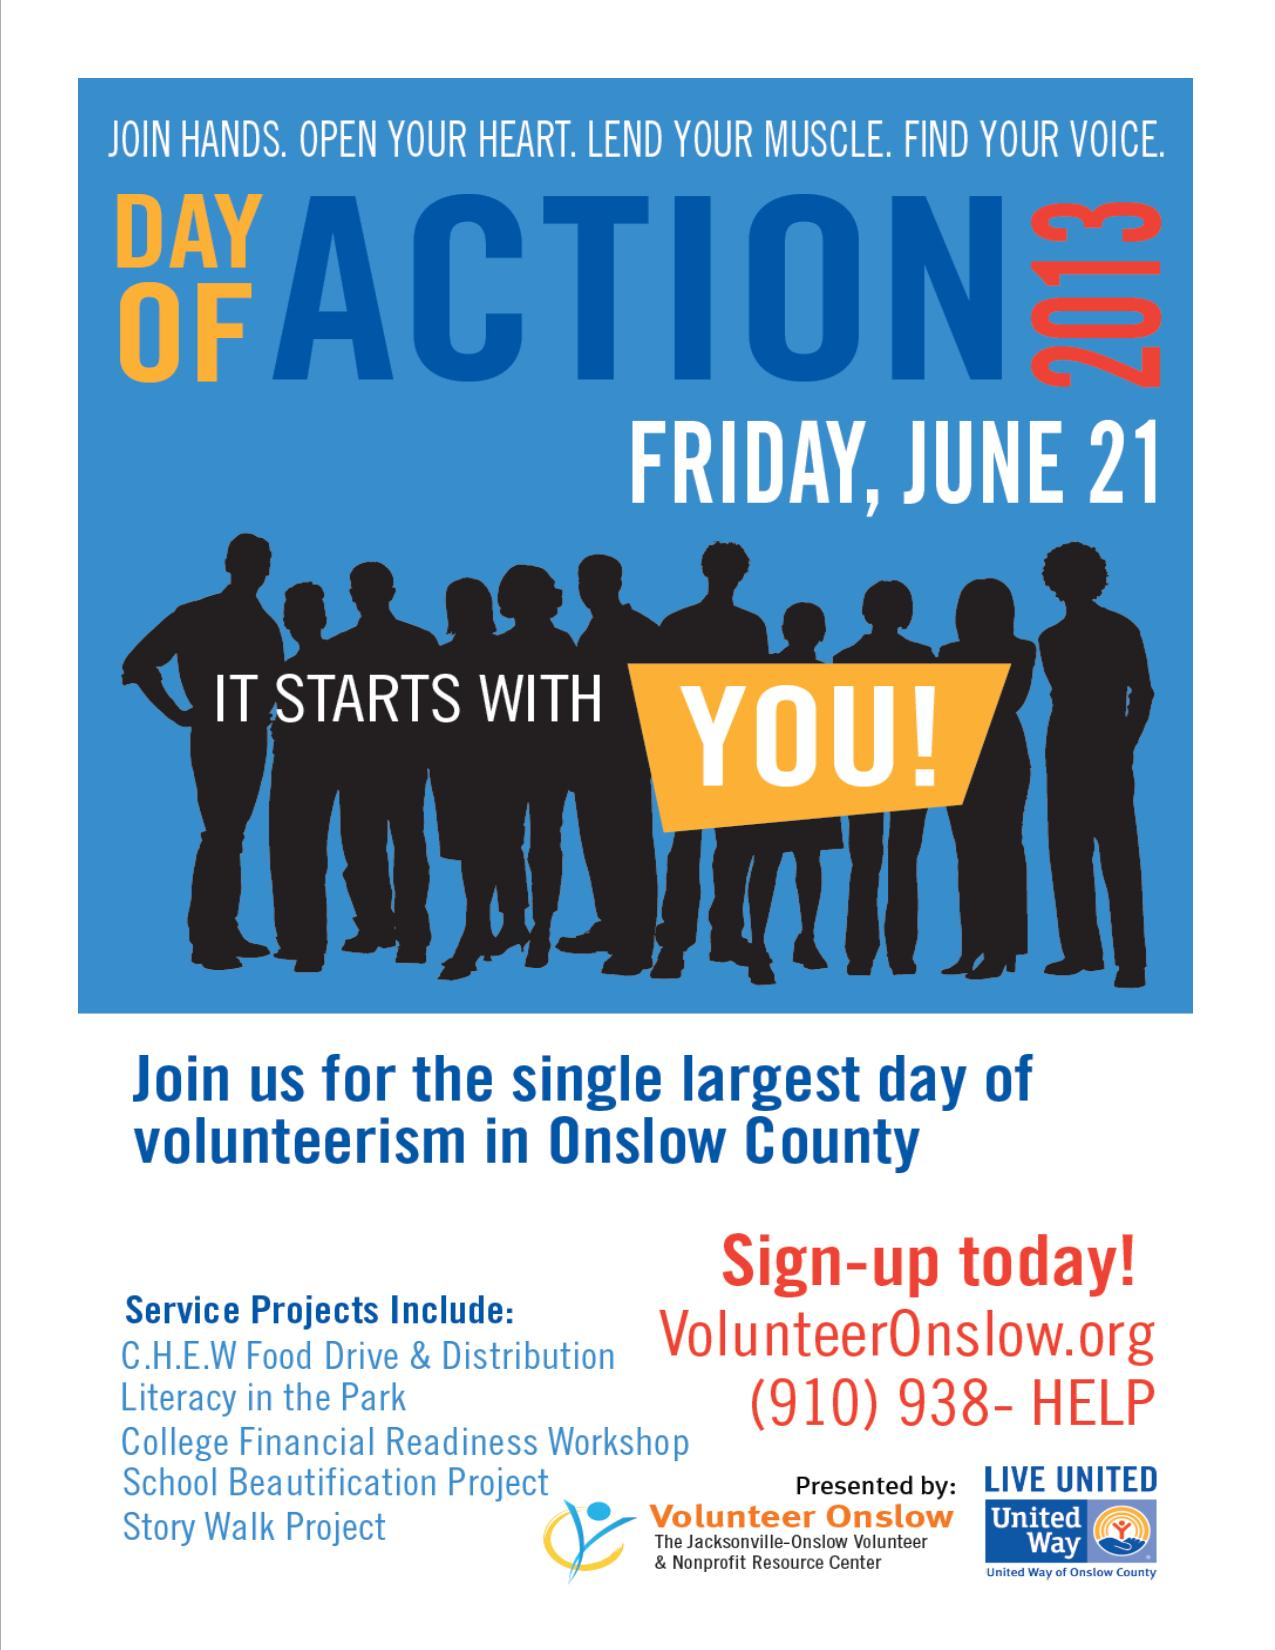 Day of Action 2013